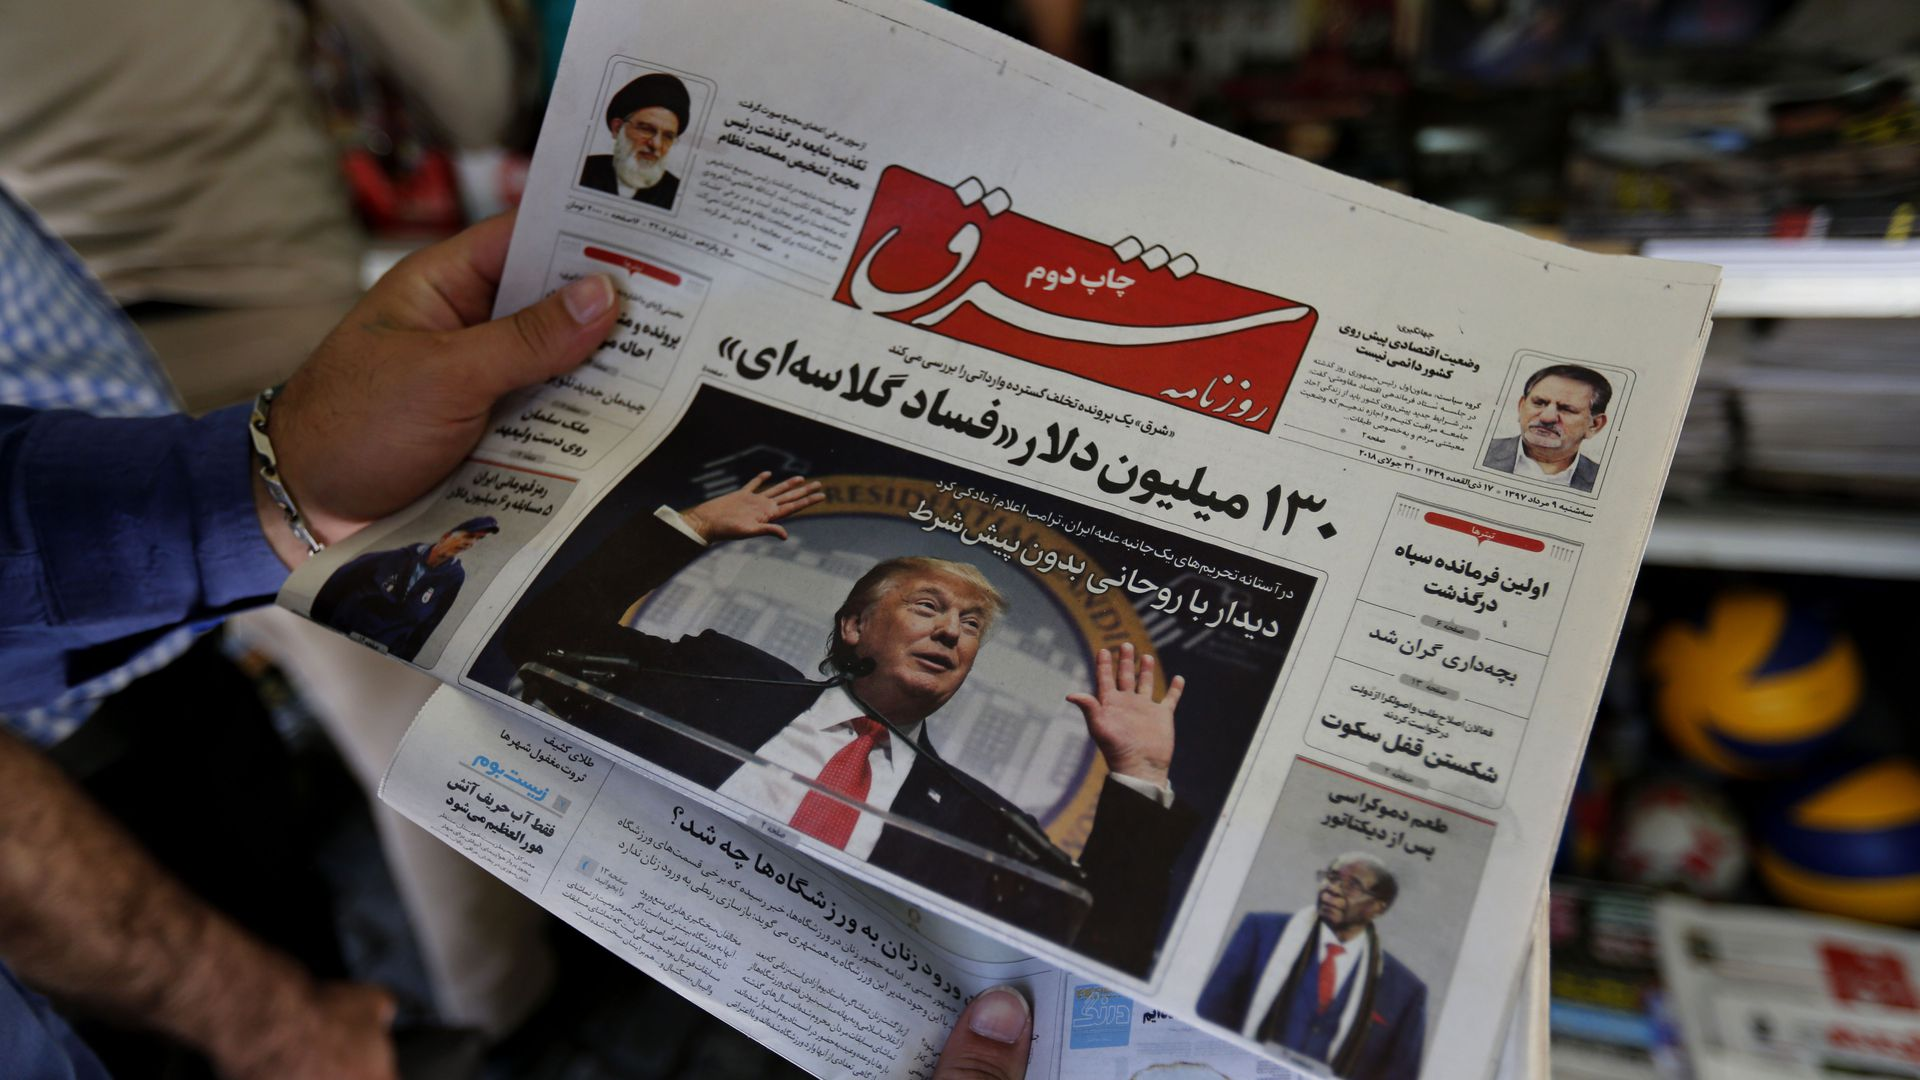 A man takes a glance at a newspaper with a picture of US president Donald Trump on the front page, in the capital Tehran on July 31, 2018.